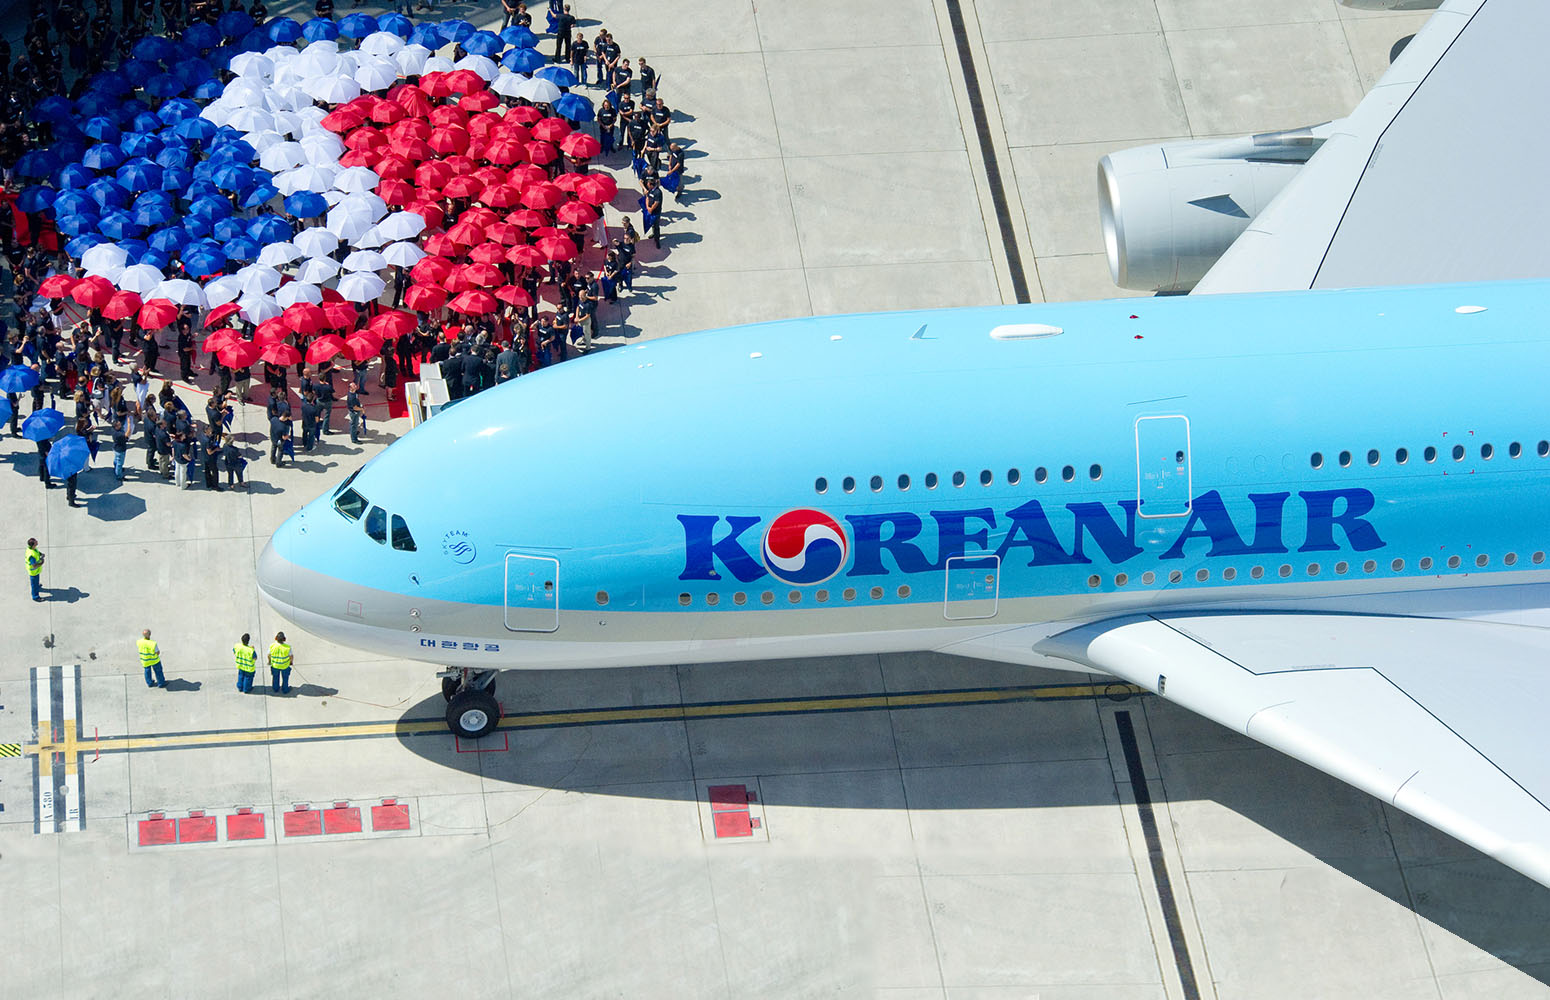 Compagnie avion - Korean Air